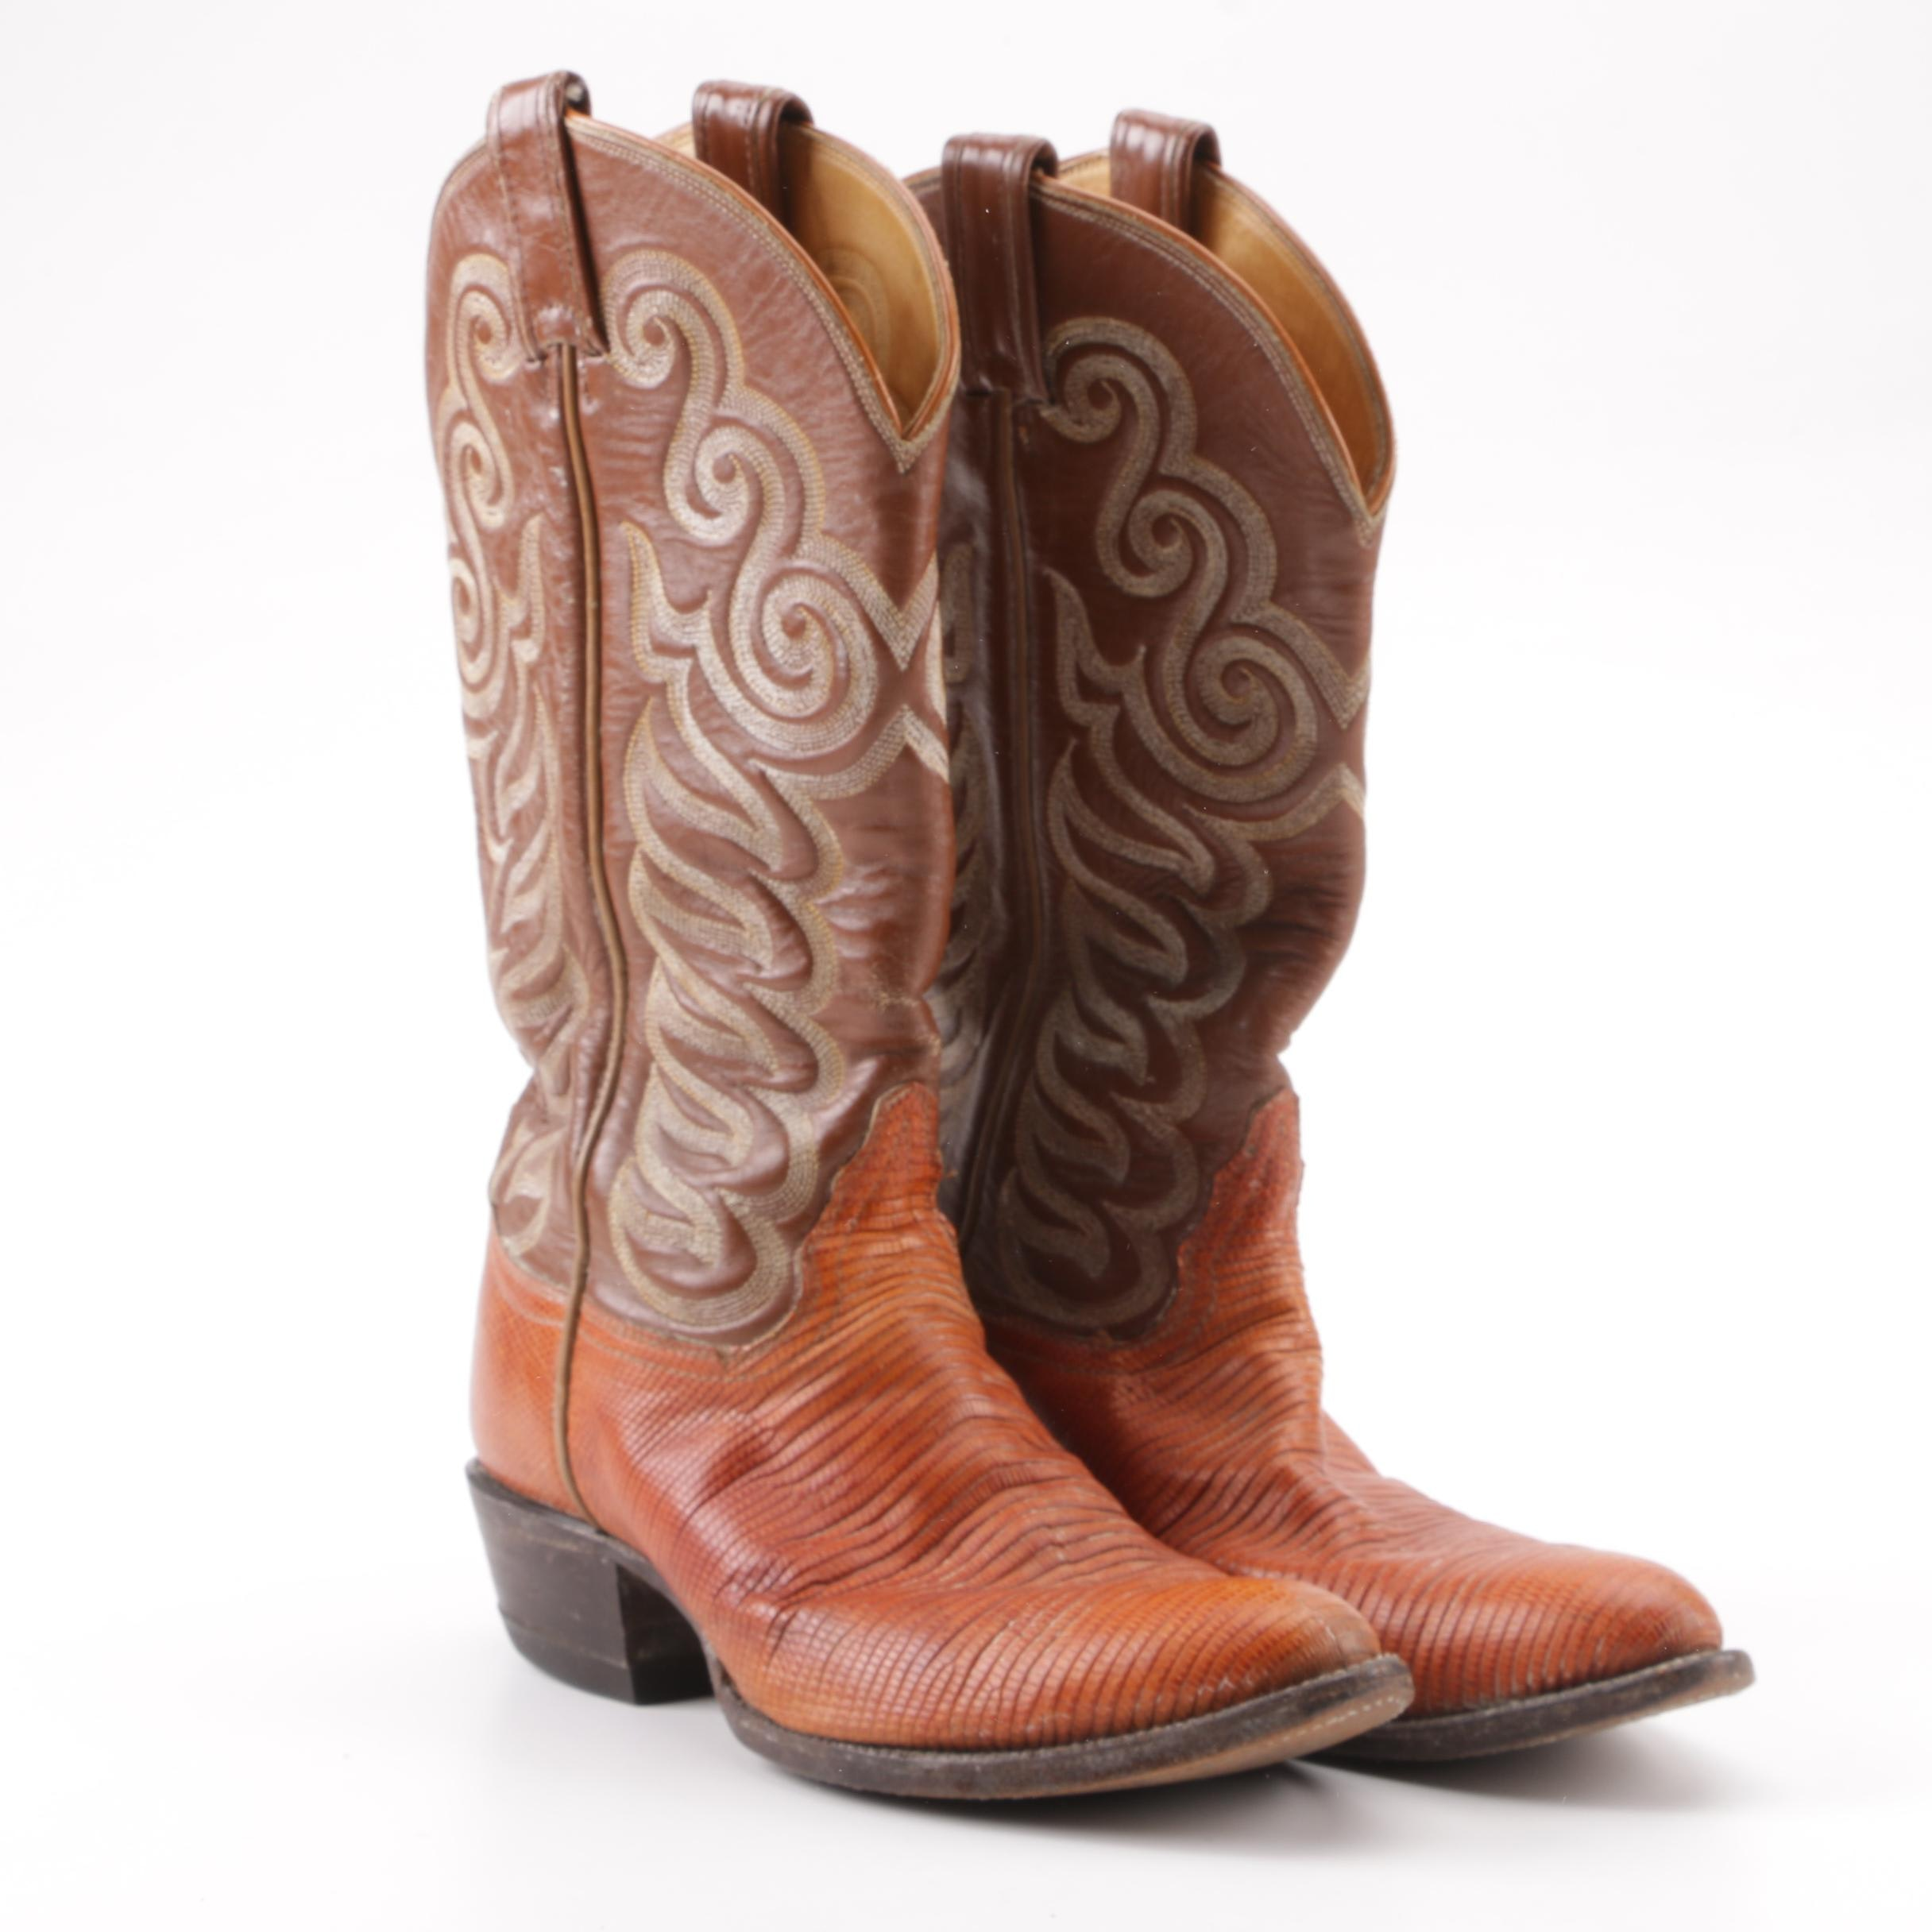 Tony Lama Brown Leather and Lizard Skin Western Boots